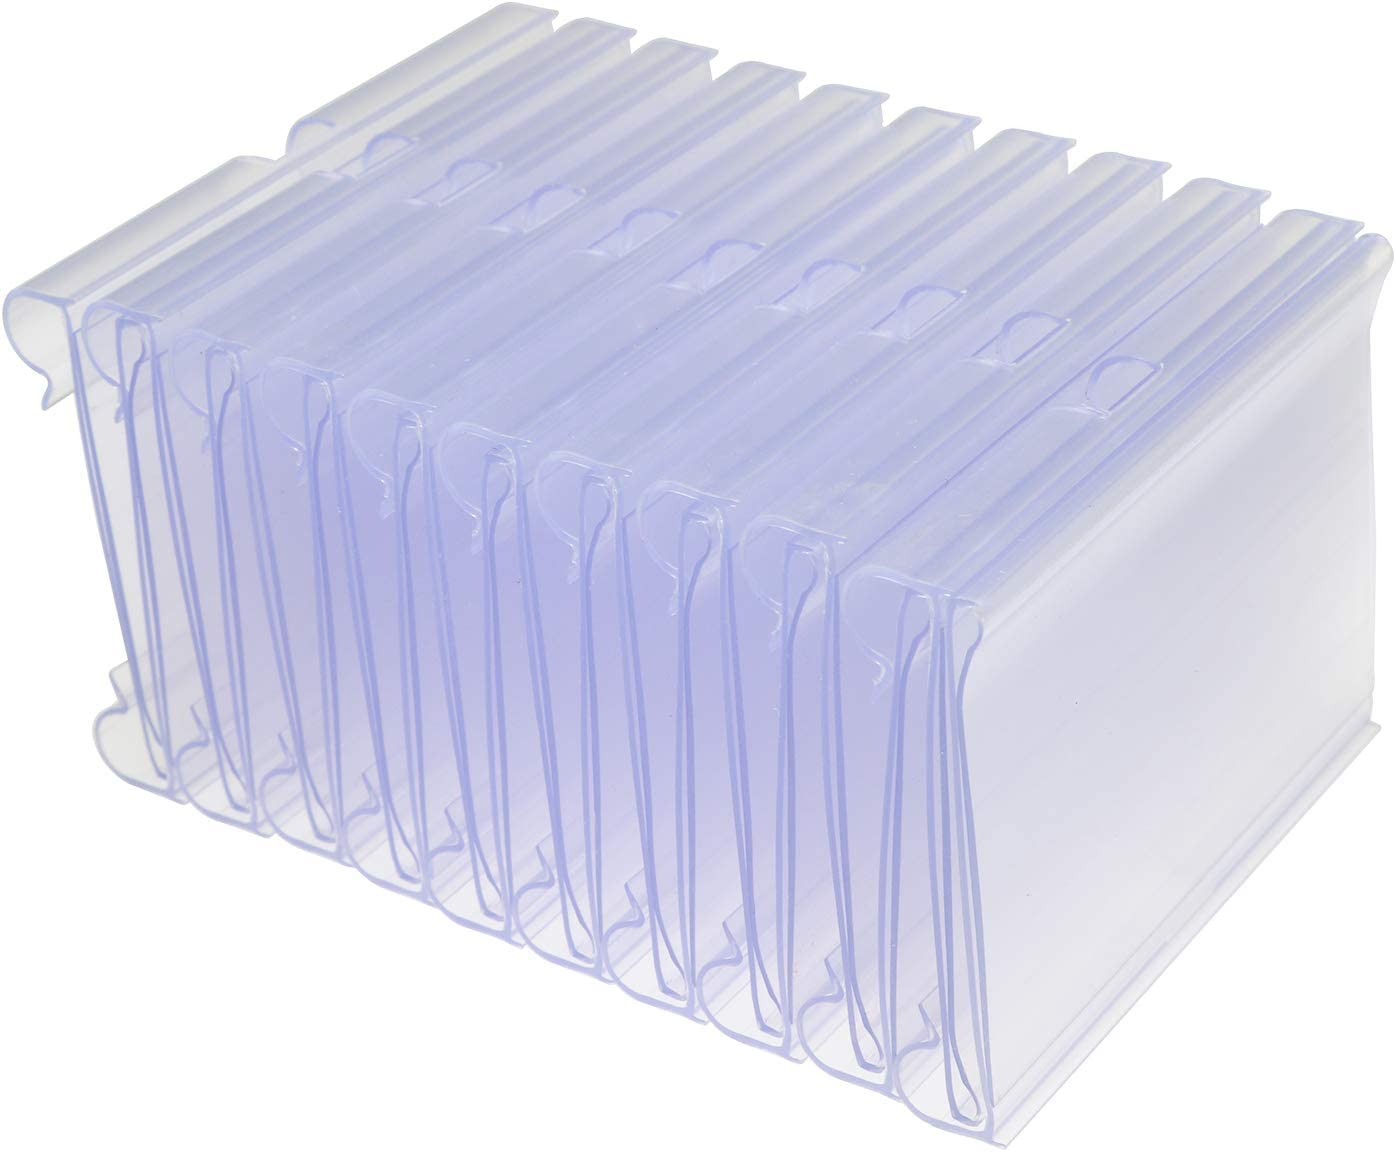 Partstock 50PCS Clear Supermarket Label Holders Retail Shelf Price Tag Holder Label Card Frame Store Merchandise Sign Display Stand 60x42mm